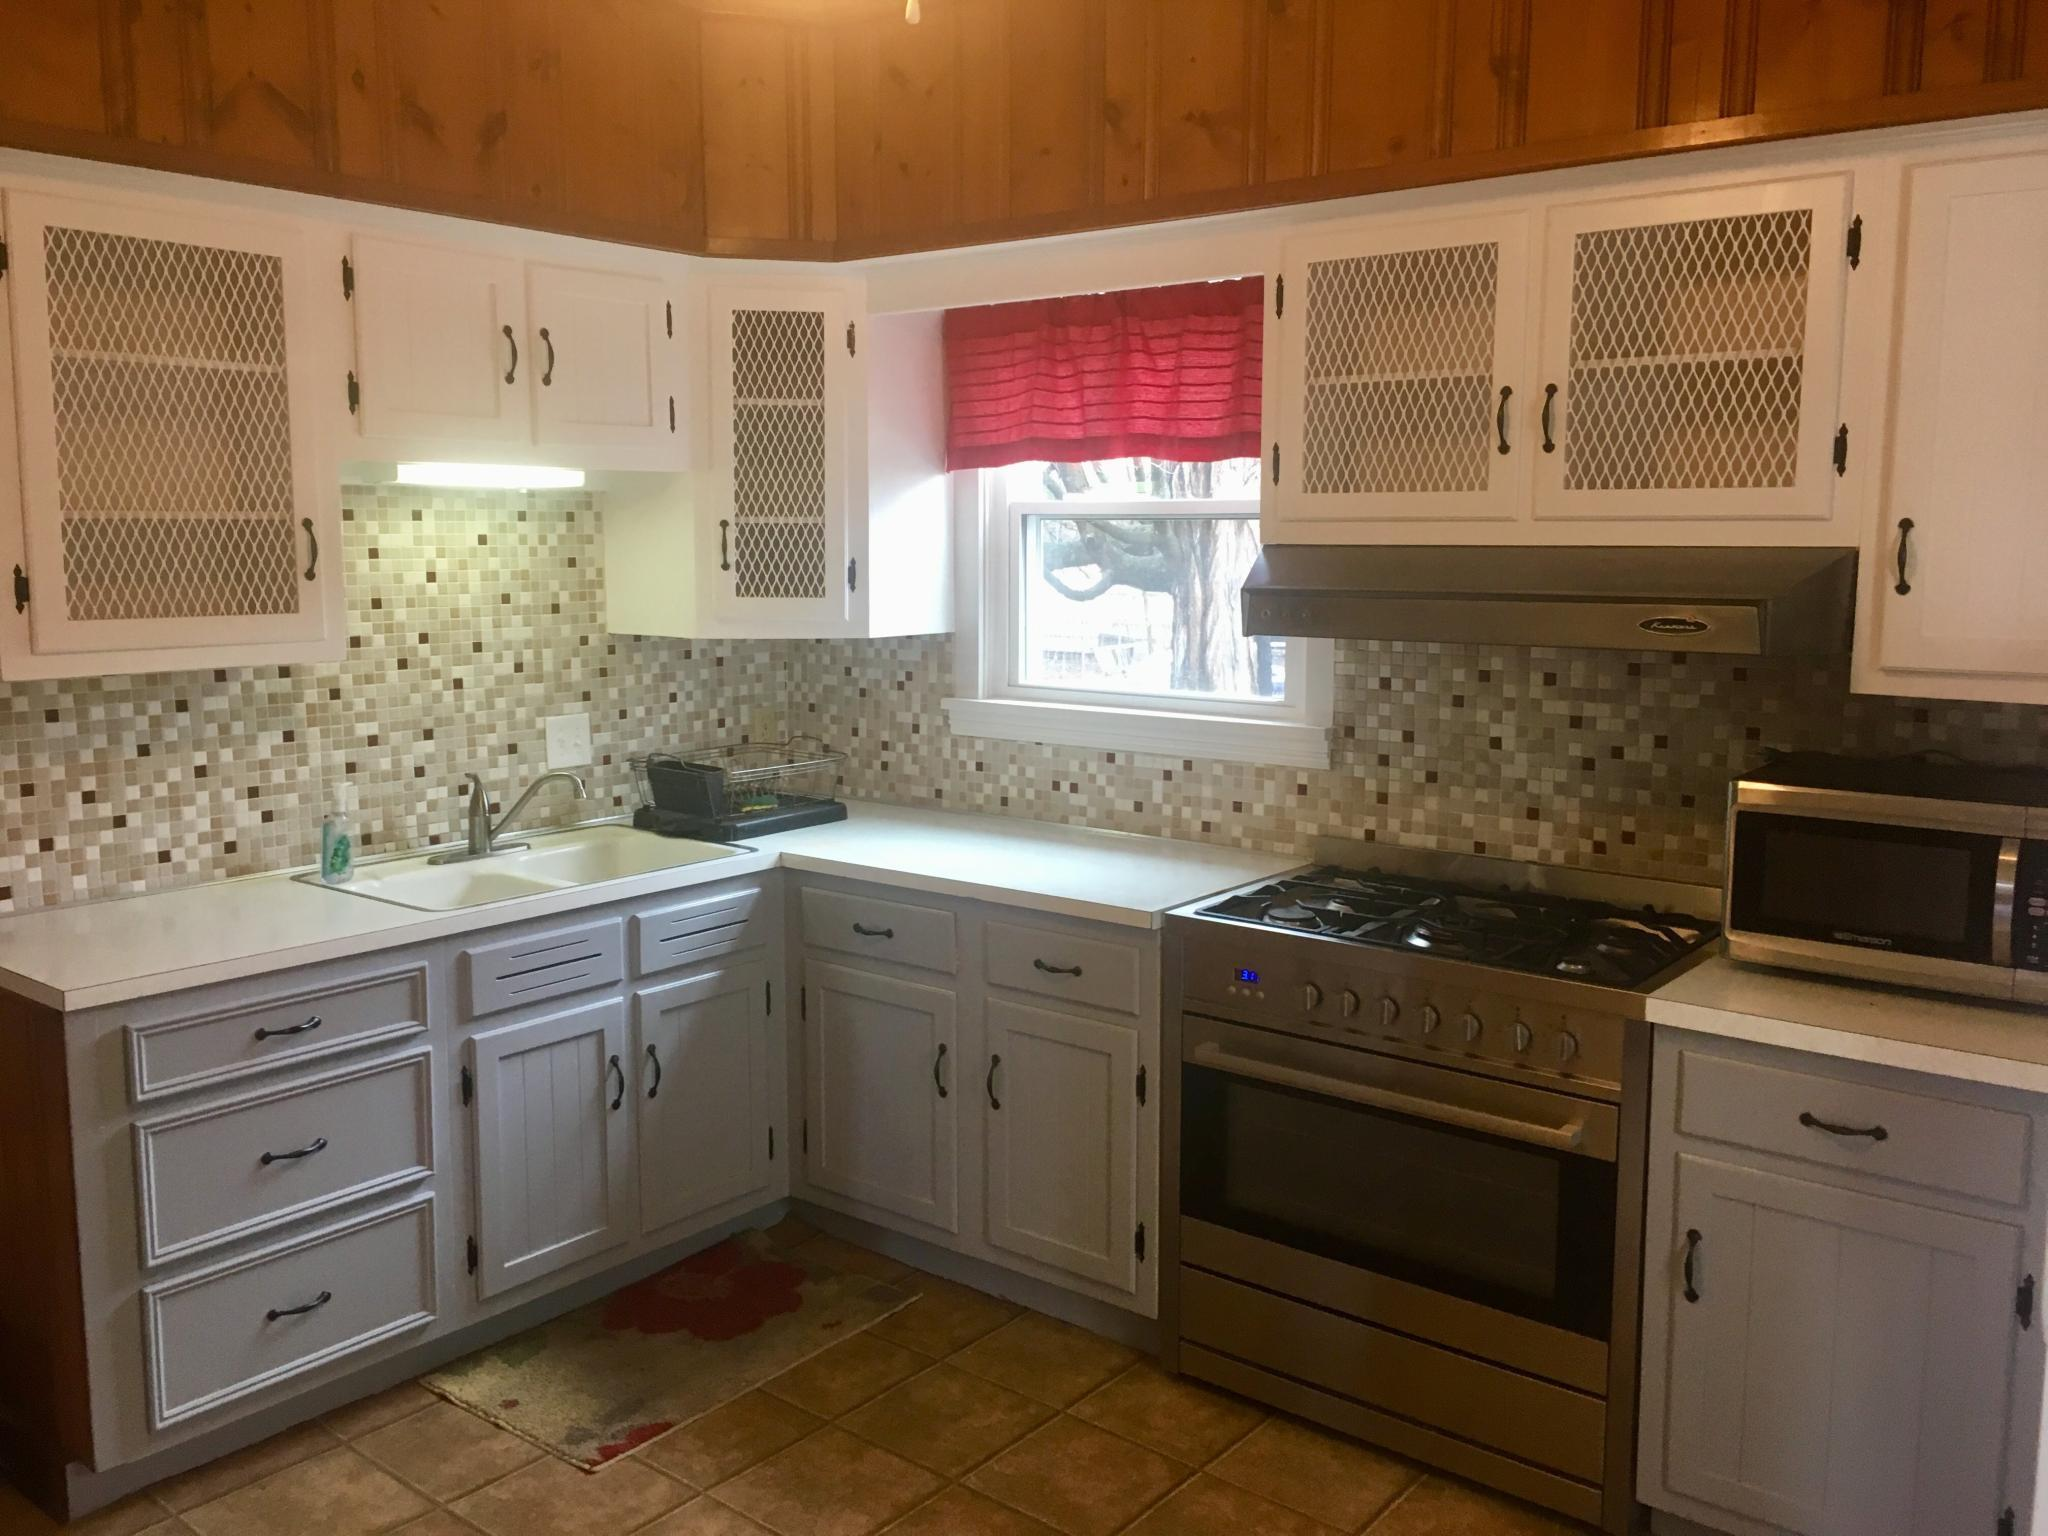 314 Crosby St For Rent - Akron, OH | Trulia